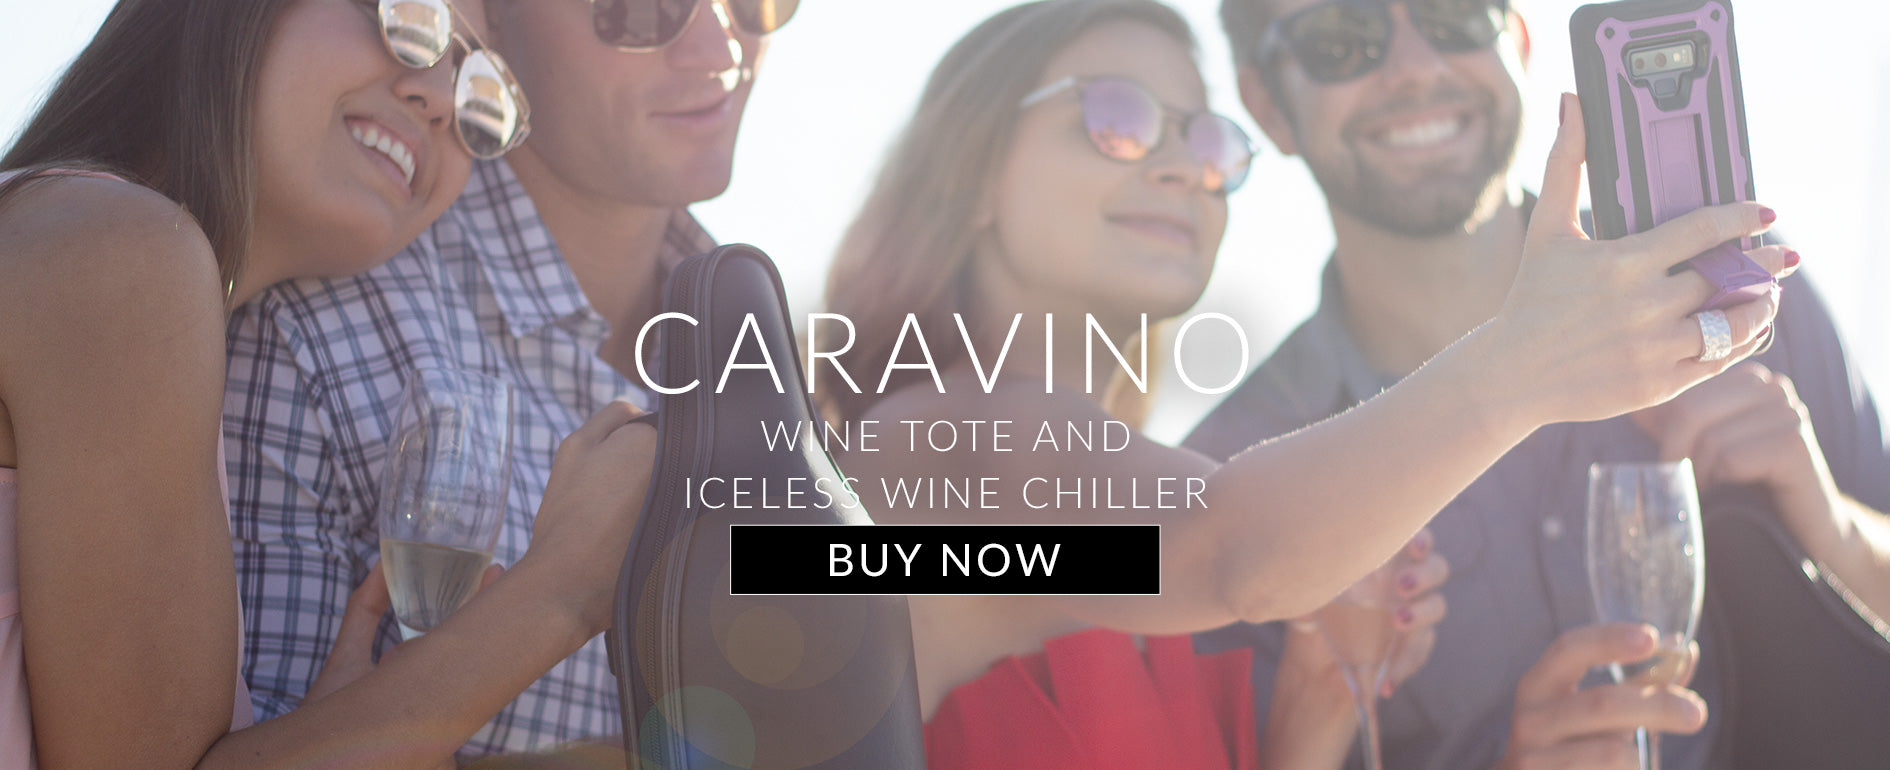 CaraVino genuine leather wine tote by ChillnJoy with  wine bottle chiller, adjustable shoulder strap, non-slip rubber base, rugged carrying handle, and a sommelier bottle opener.